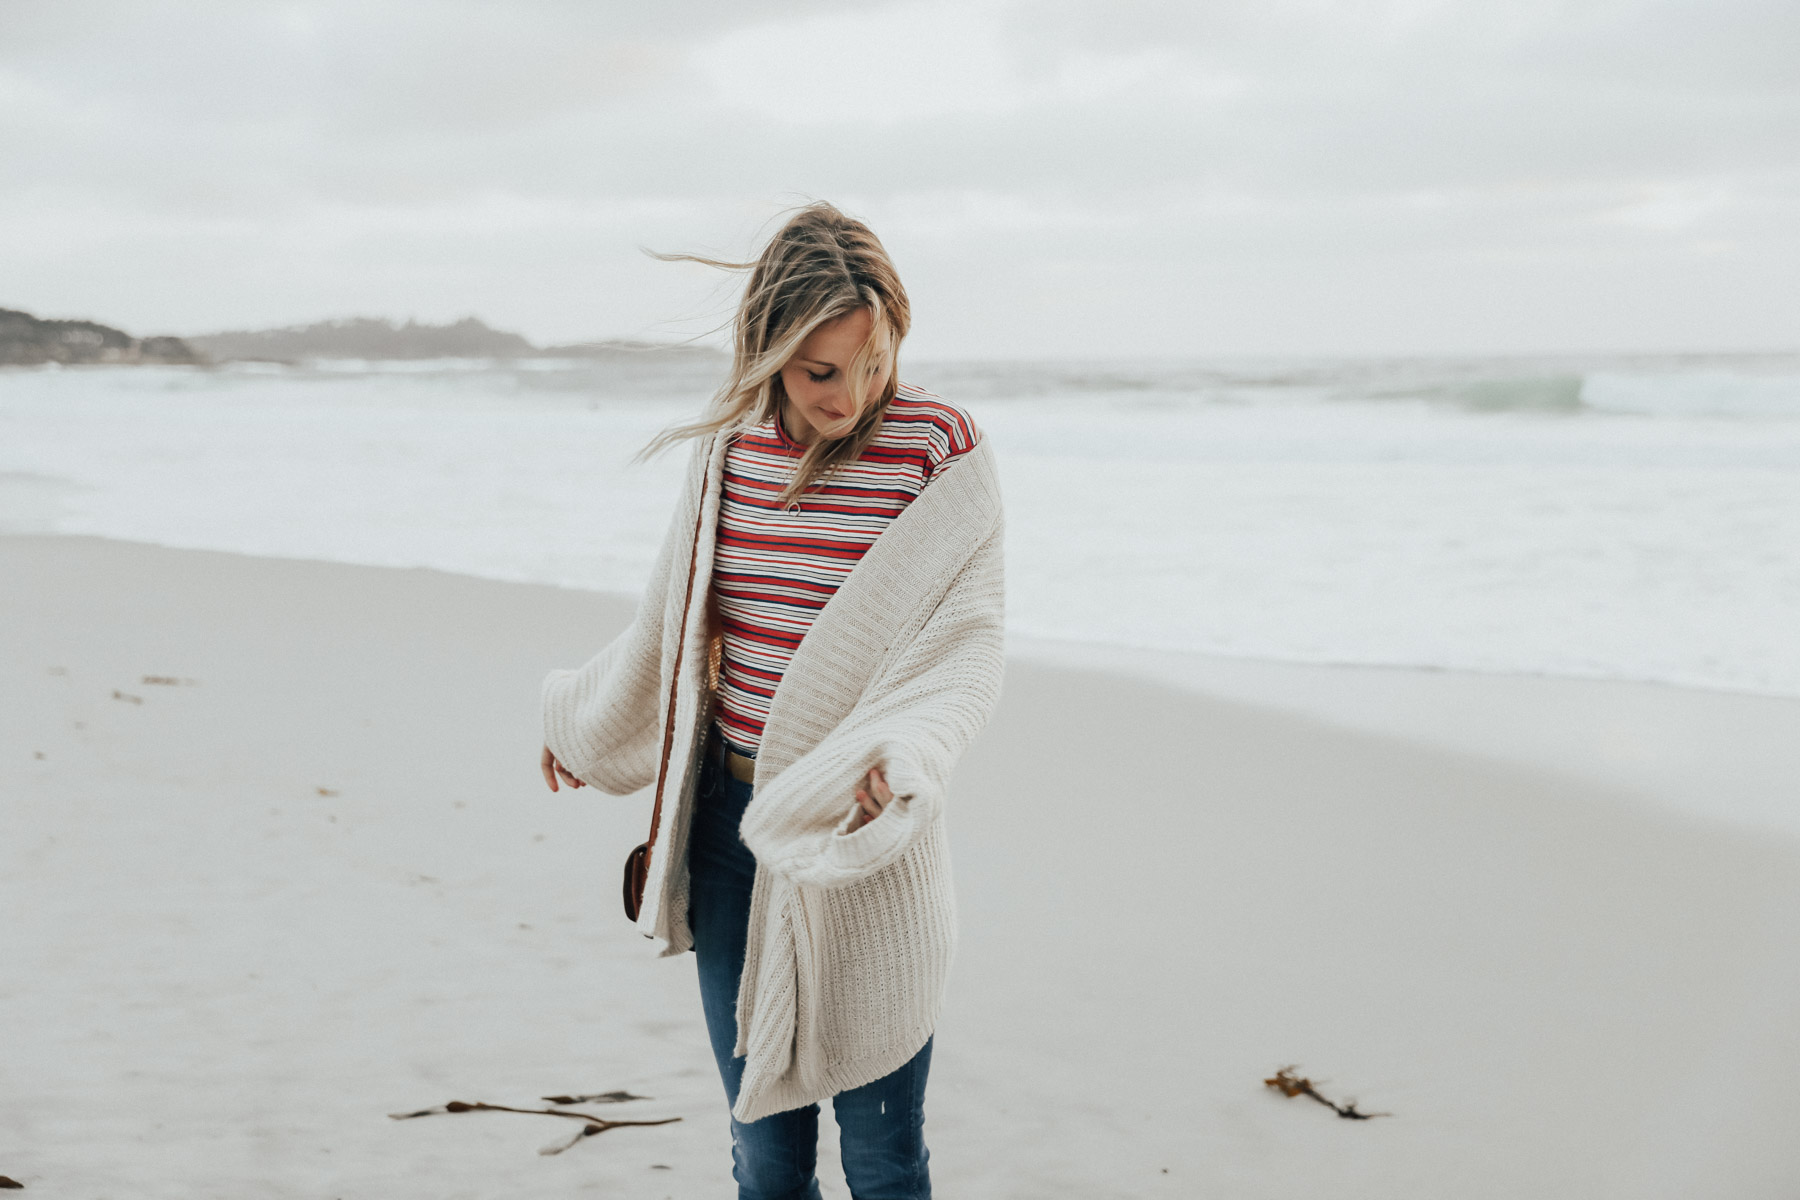 amanda holstein in madewell tee, urban outfitters sweater on beach